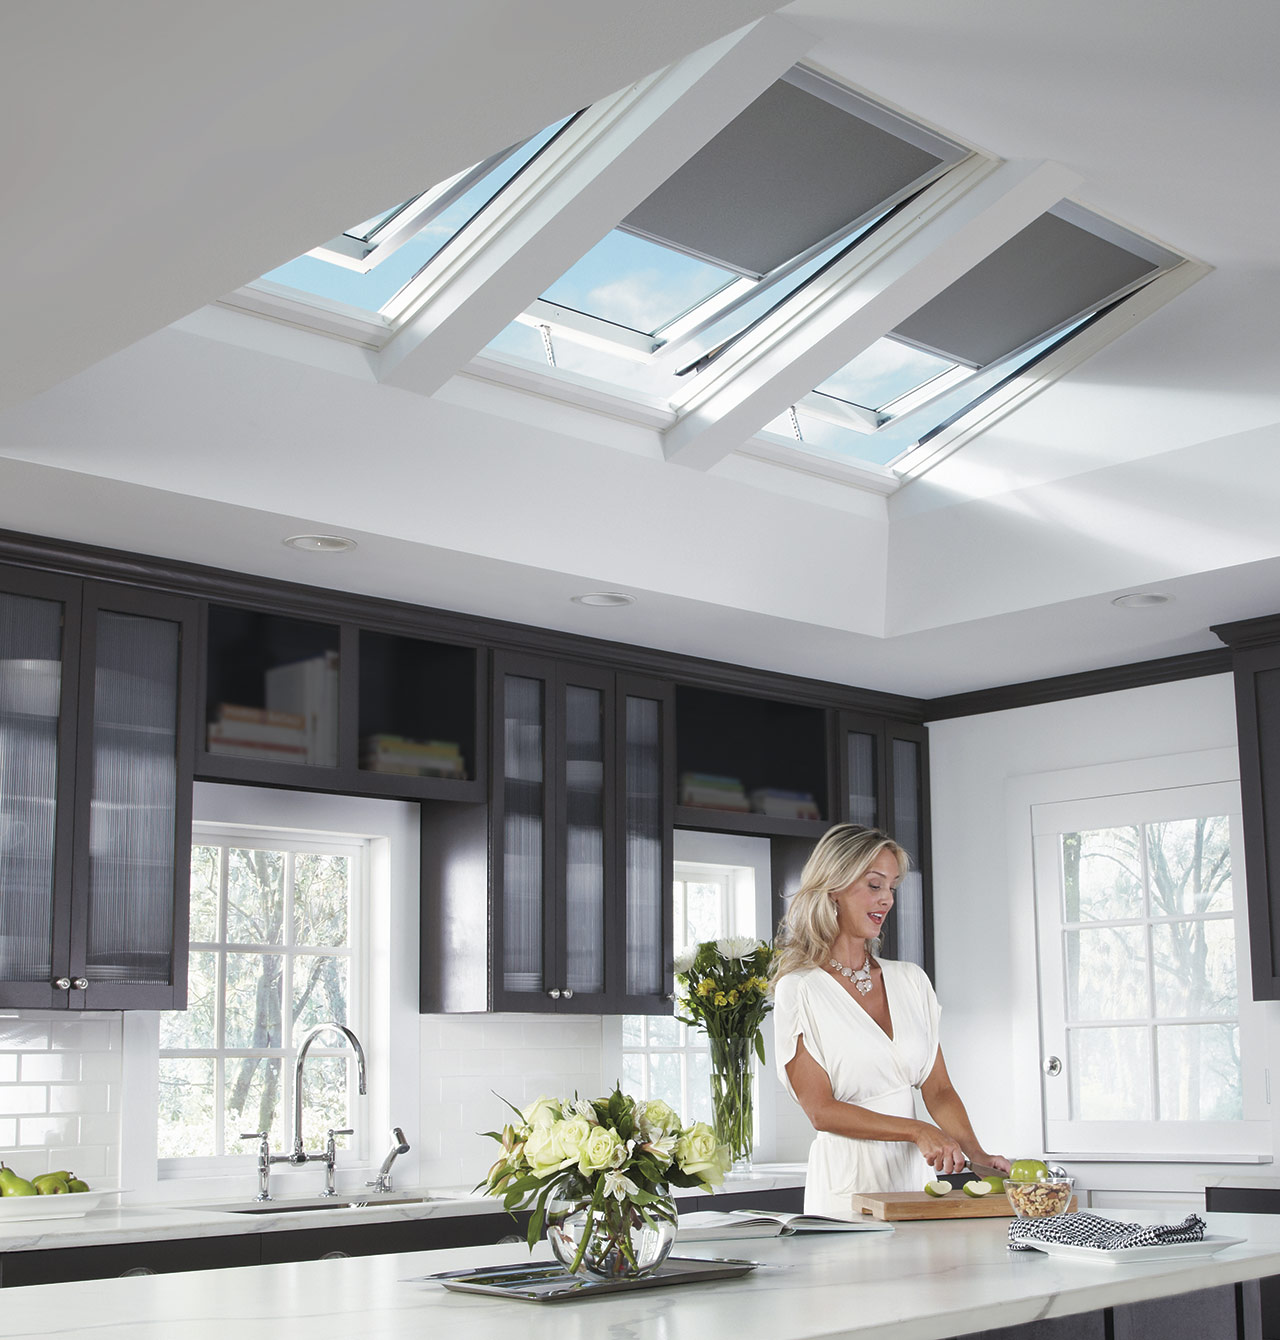 polycarbonate sky skylights lights a cover with skylight room ceiling ideas rooms roof whats lighting flat amazing living